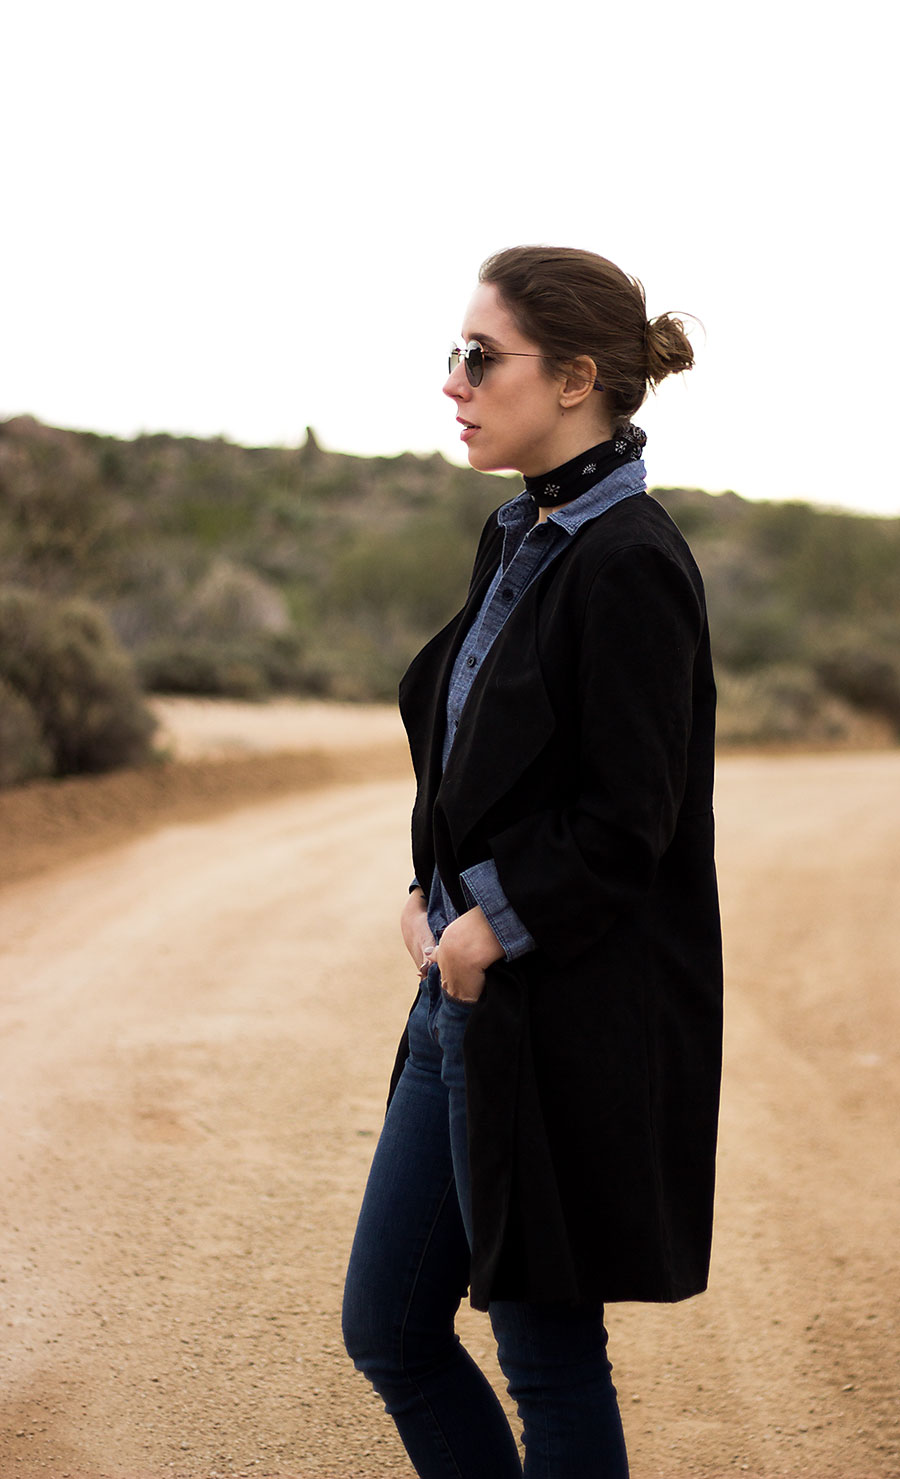 Denim outfits, desert outfit, what to wear to the desert, denim on denim outfit, how to style denim on denim, western booties, black booties, long black jacket, Phoenix, Arizona, Desert photography, desert outfit, all denim outfit, bandana around neck, how to style a bandana